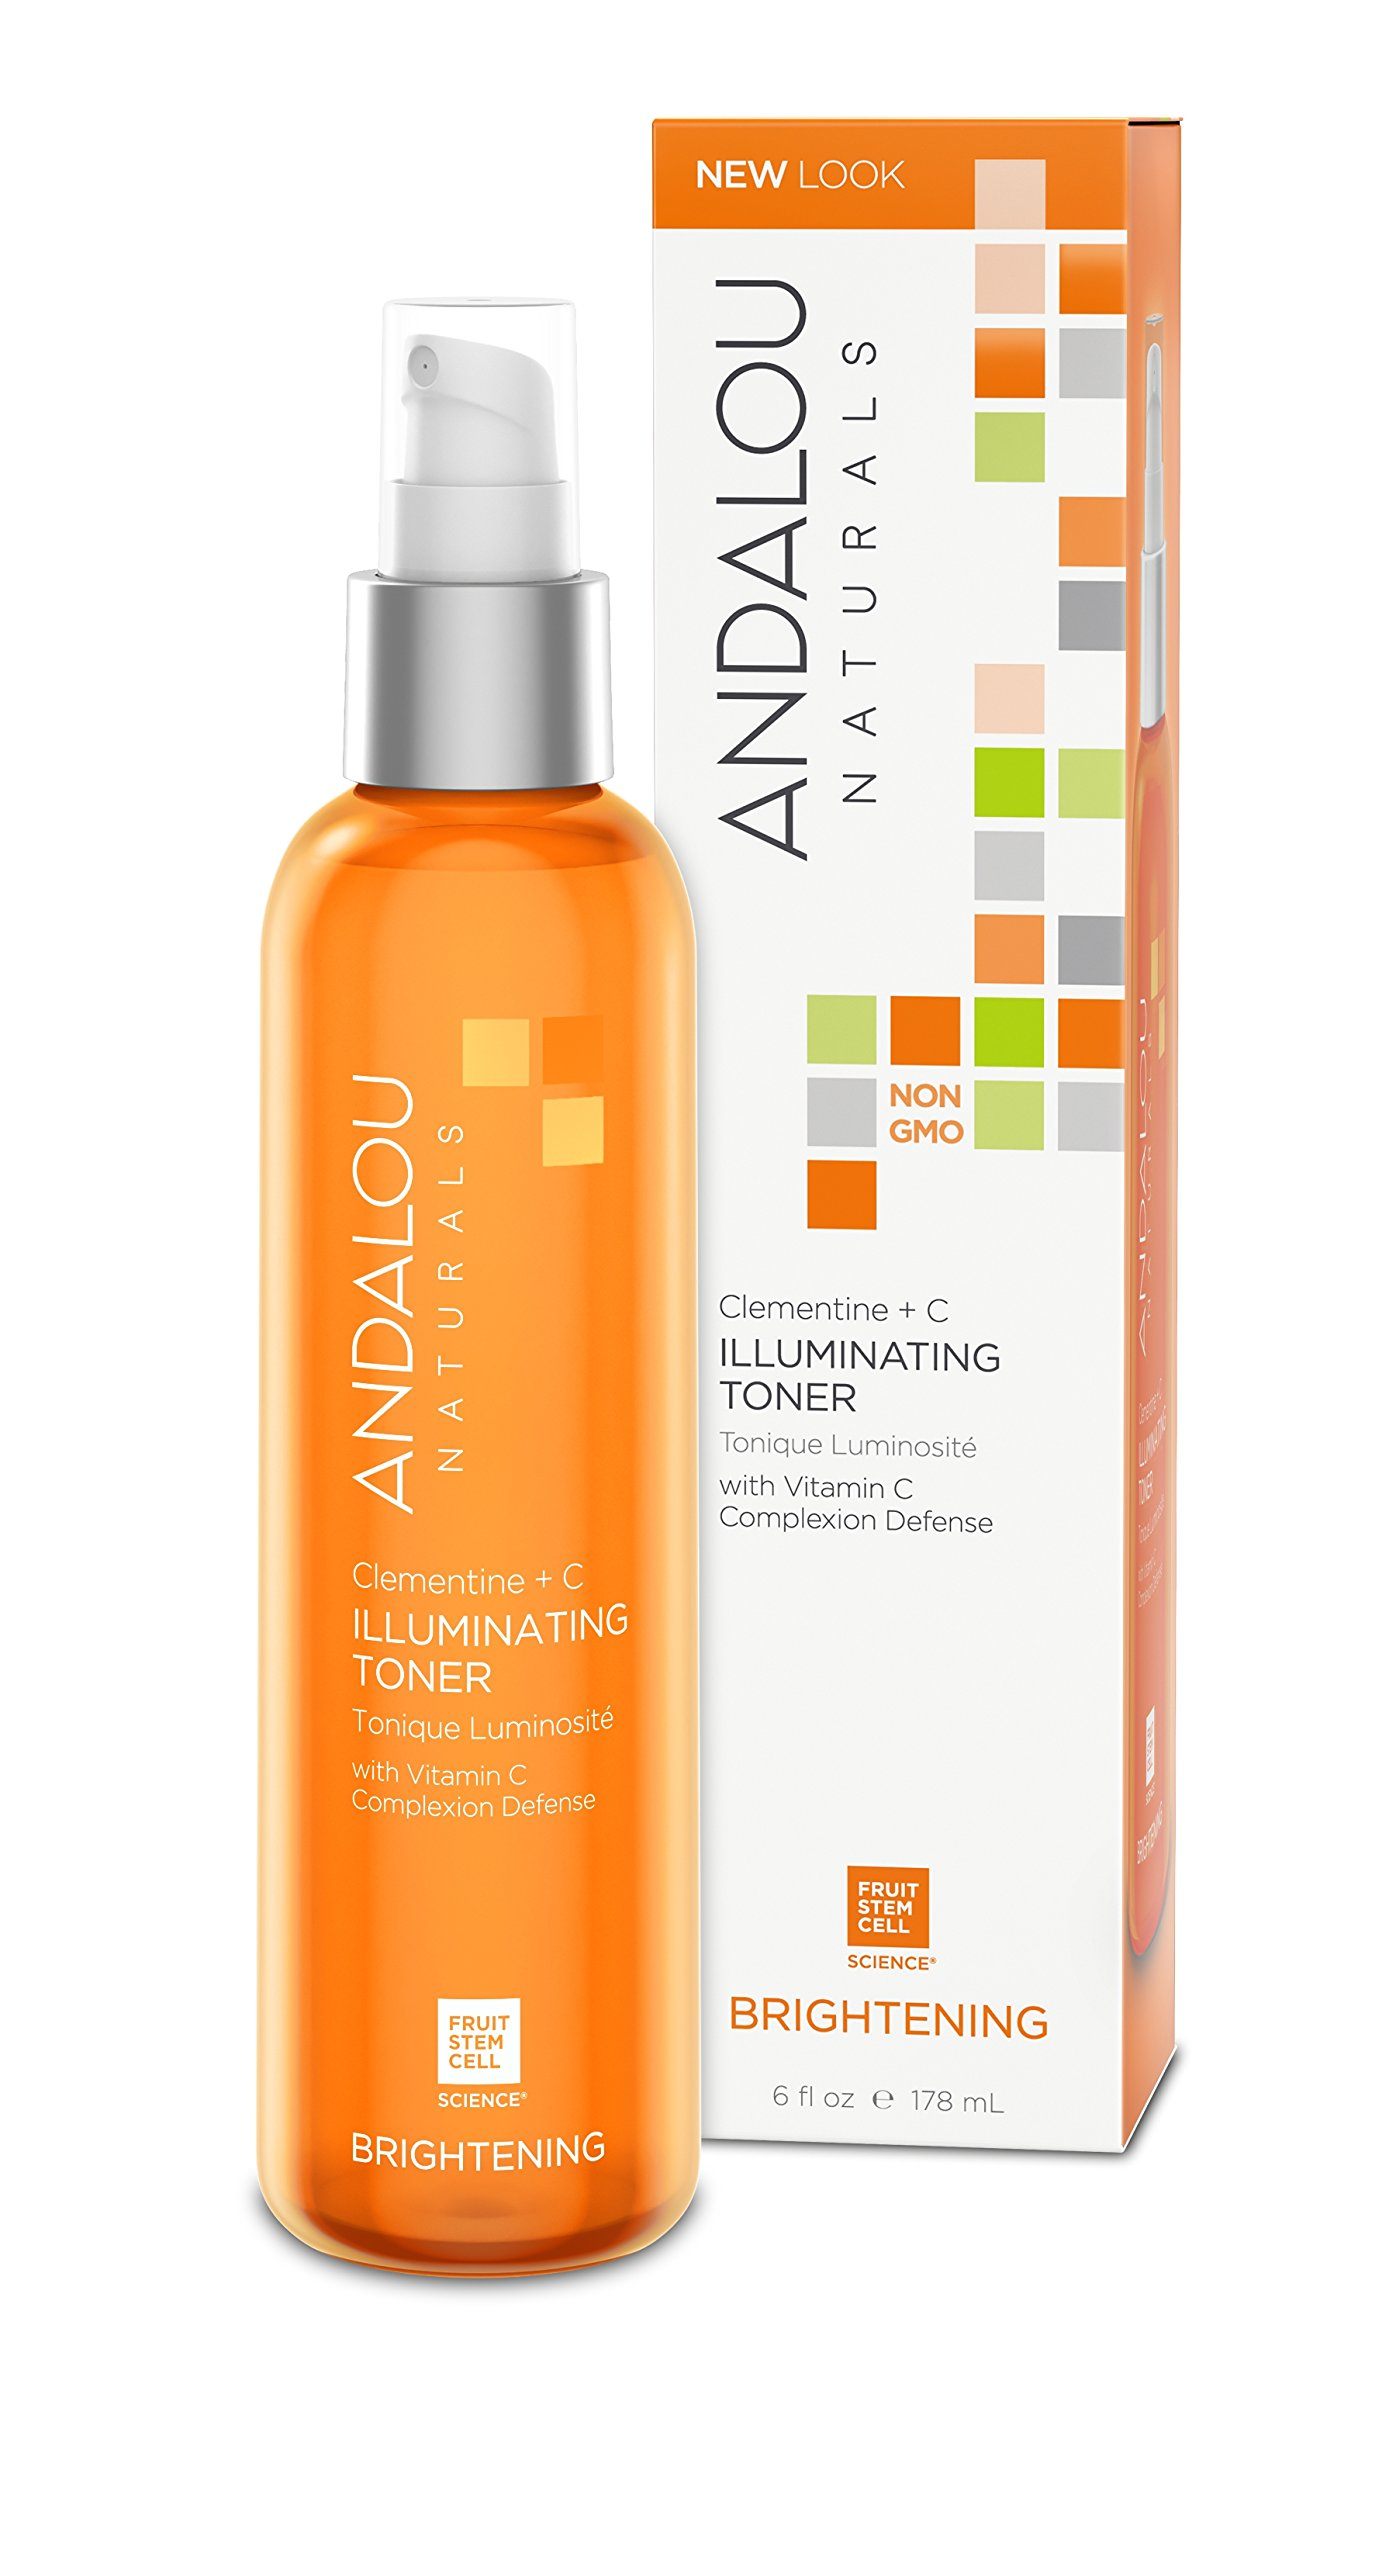 Andalou Naturals Clementine + C Illuminating Toner, 6 oz, Facial Toner Helps Hydrate & Balance Skin pH, For Clear, Bright Skin